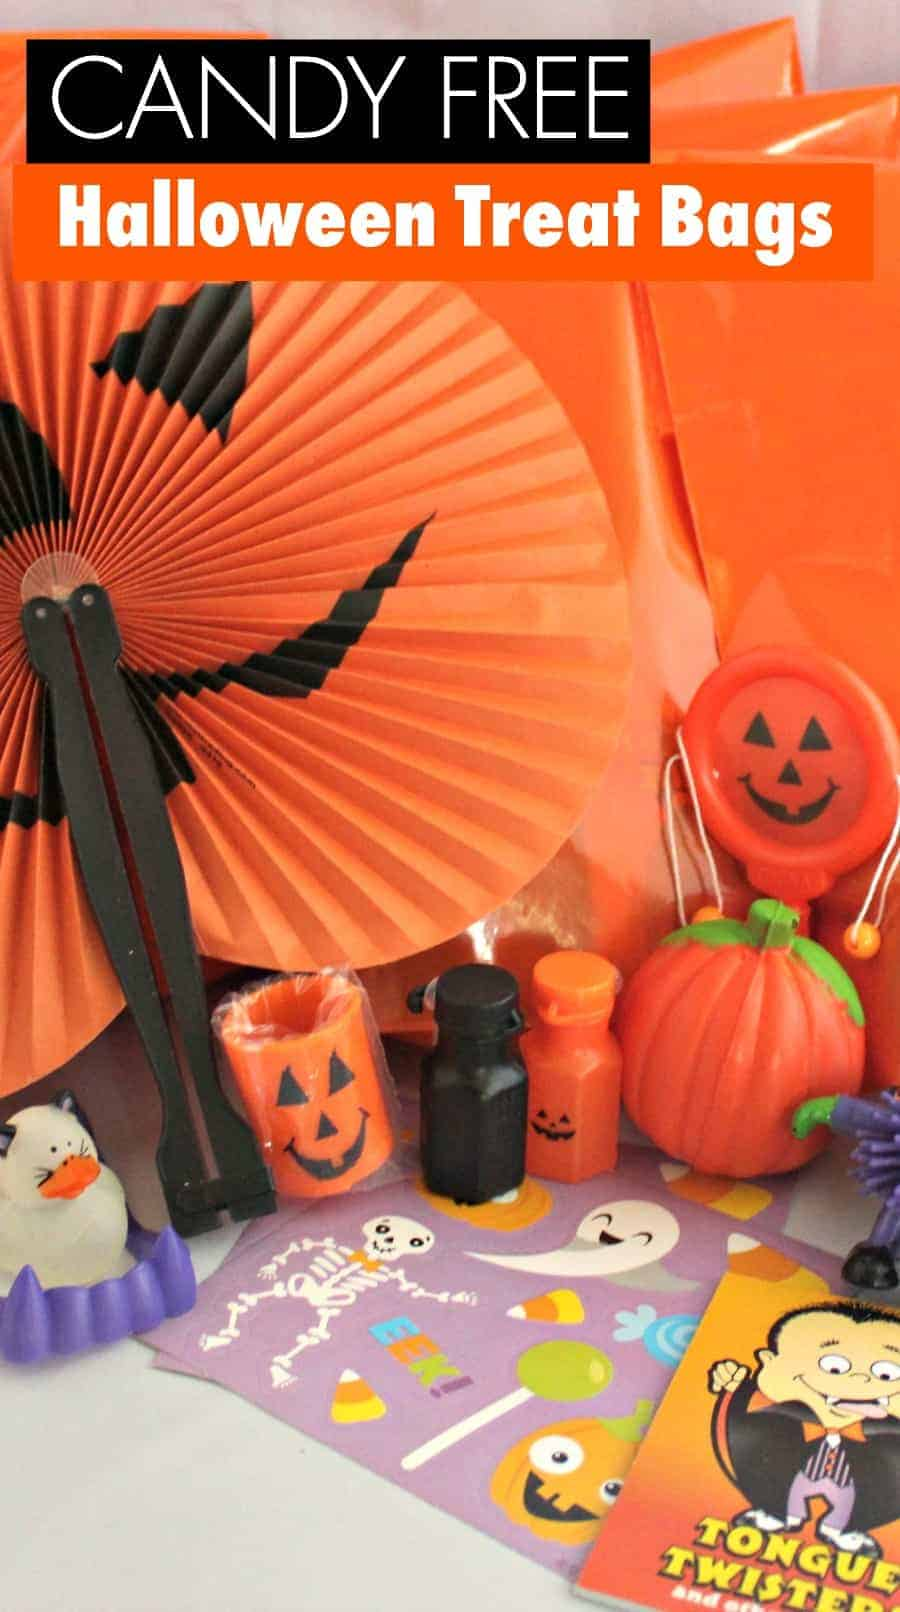 How to Assemble Candy Free Halloween Treat Bags 1